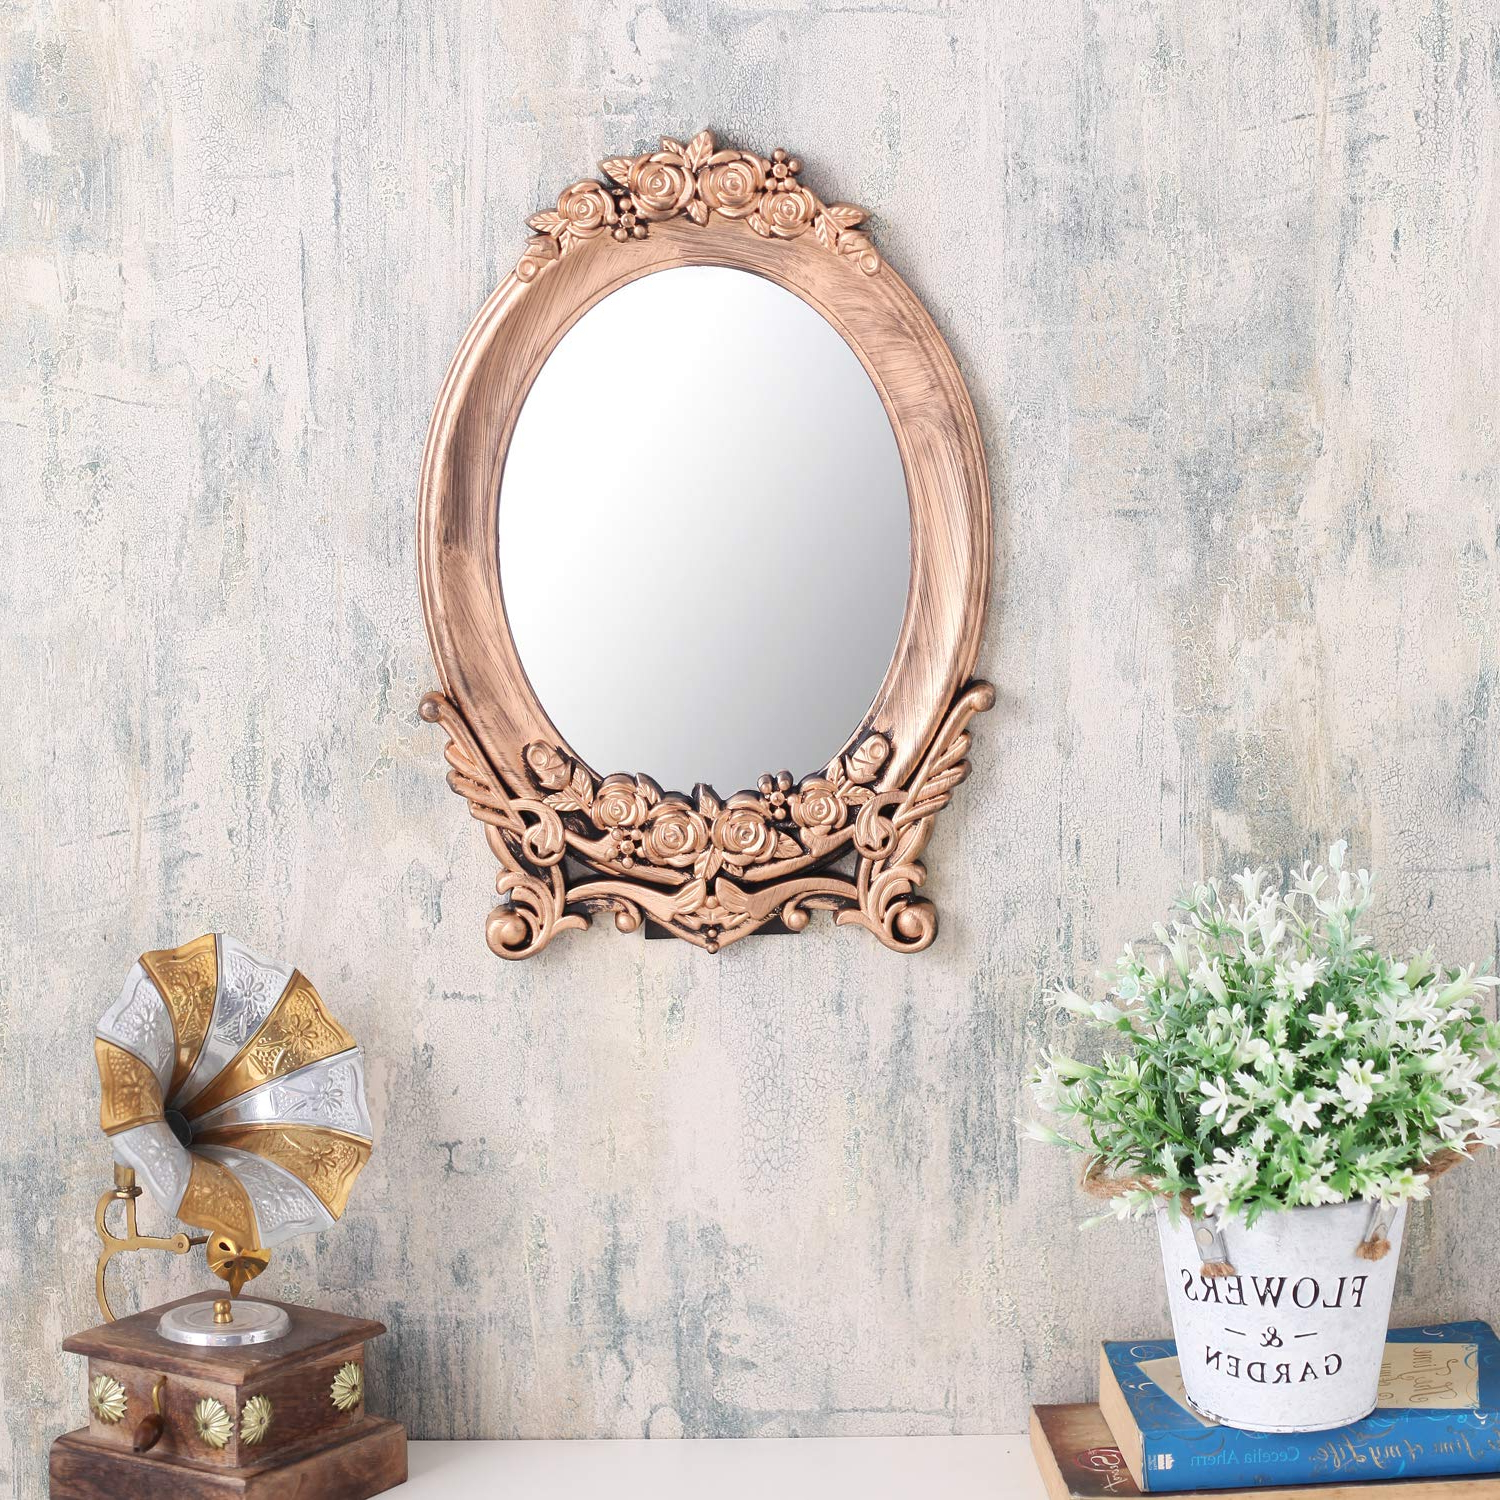 Current Small Vintage Wall Mirrors With Regard To A Vintage Affair Decorative Wall Mirror Antique Hanging Design Small Size  Oval For Bedroom Bathroom Living Room Office Copper (View 3 of 20)